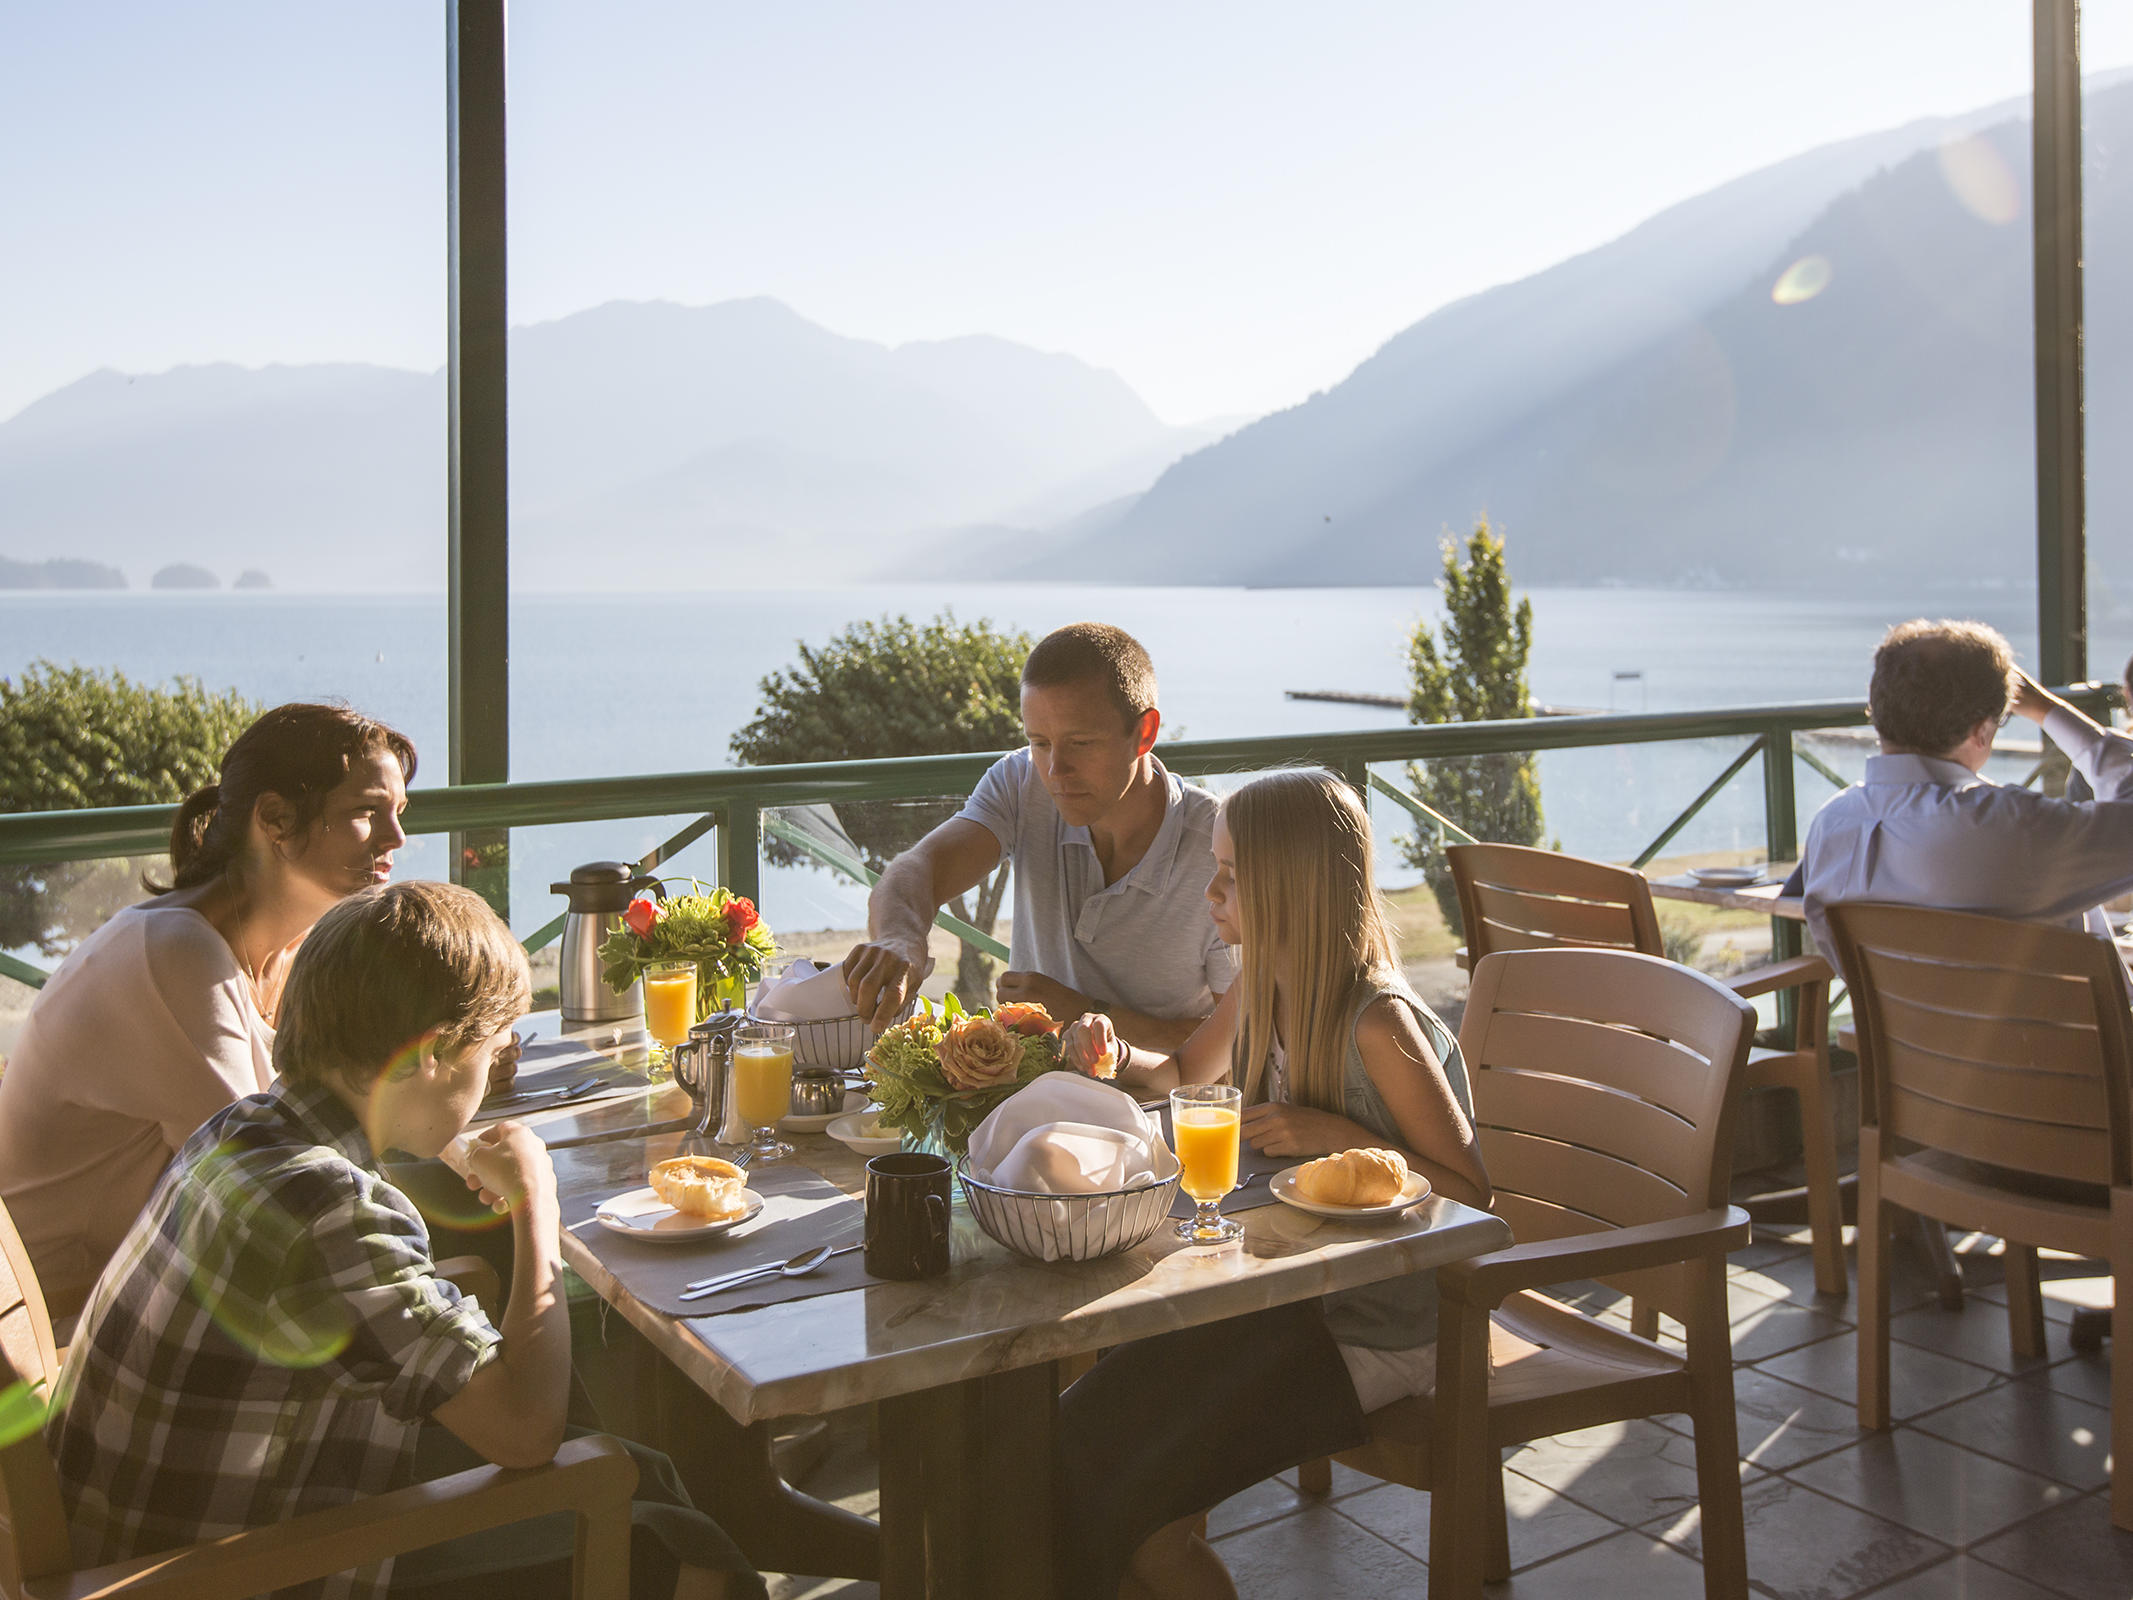 family eating outside with views of mountain and water